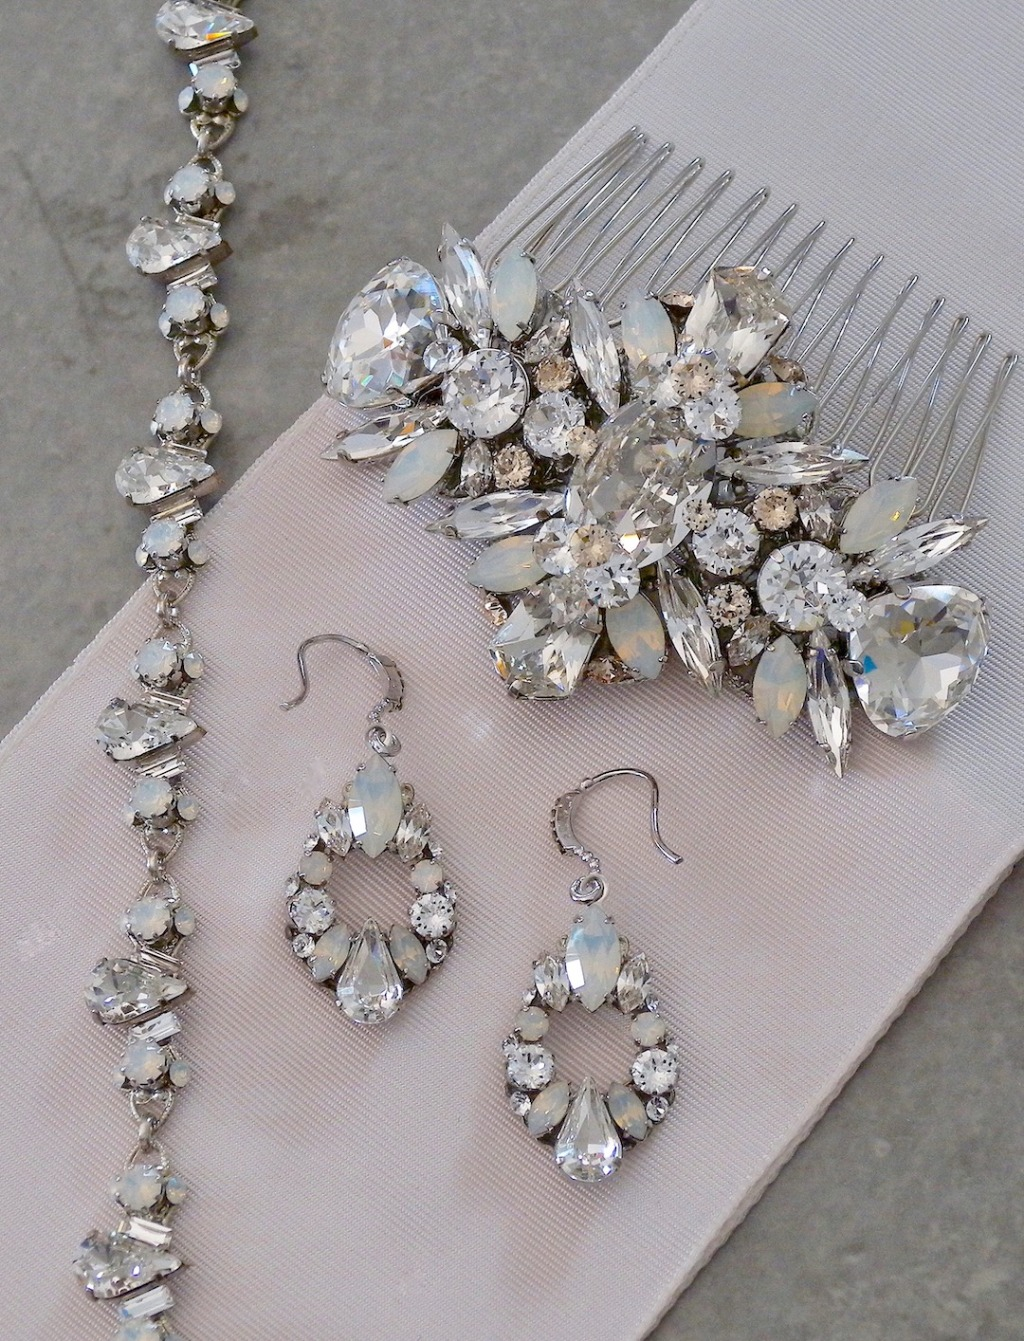 Just a few of our fabulous jewels from our Haute Bride Jewelry & Accessories Collection. Jewelry, Earrings & Hairpieces. Show